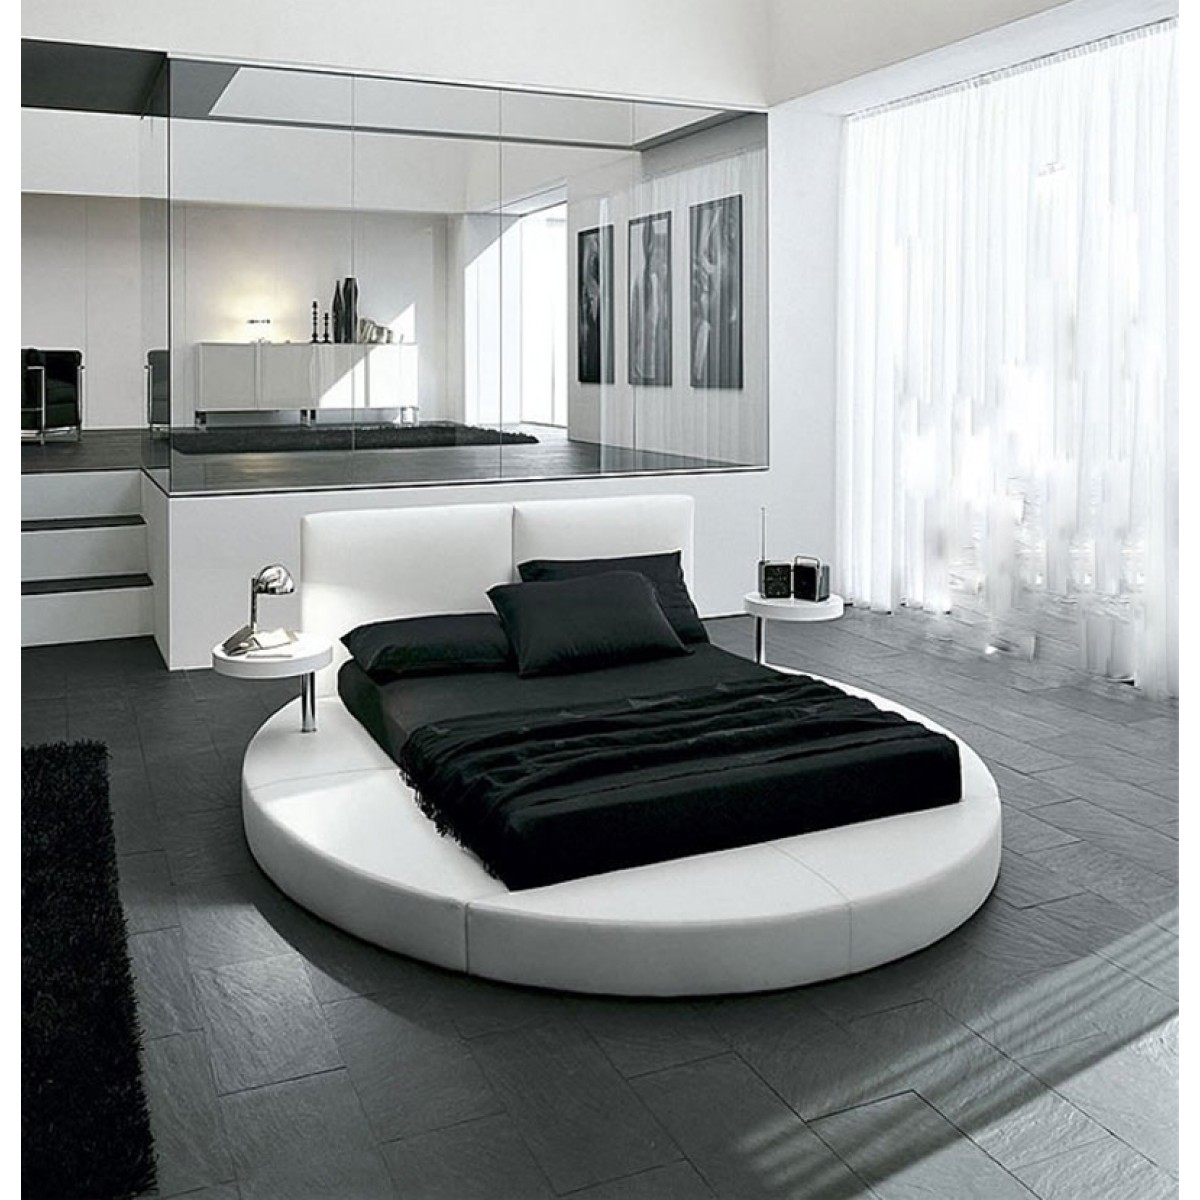 lit rond personnalisable maldives 140 160 180 cuir ou. Black Bedroom Furniture Sets. Home Design Ideas